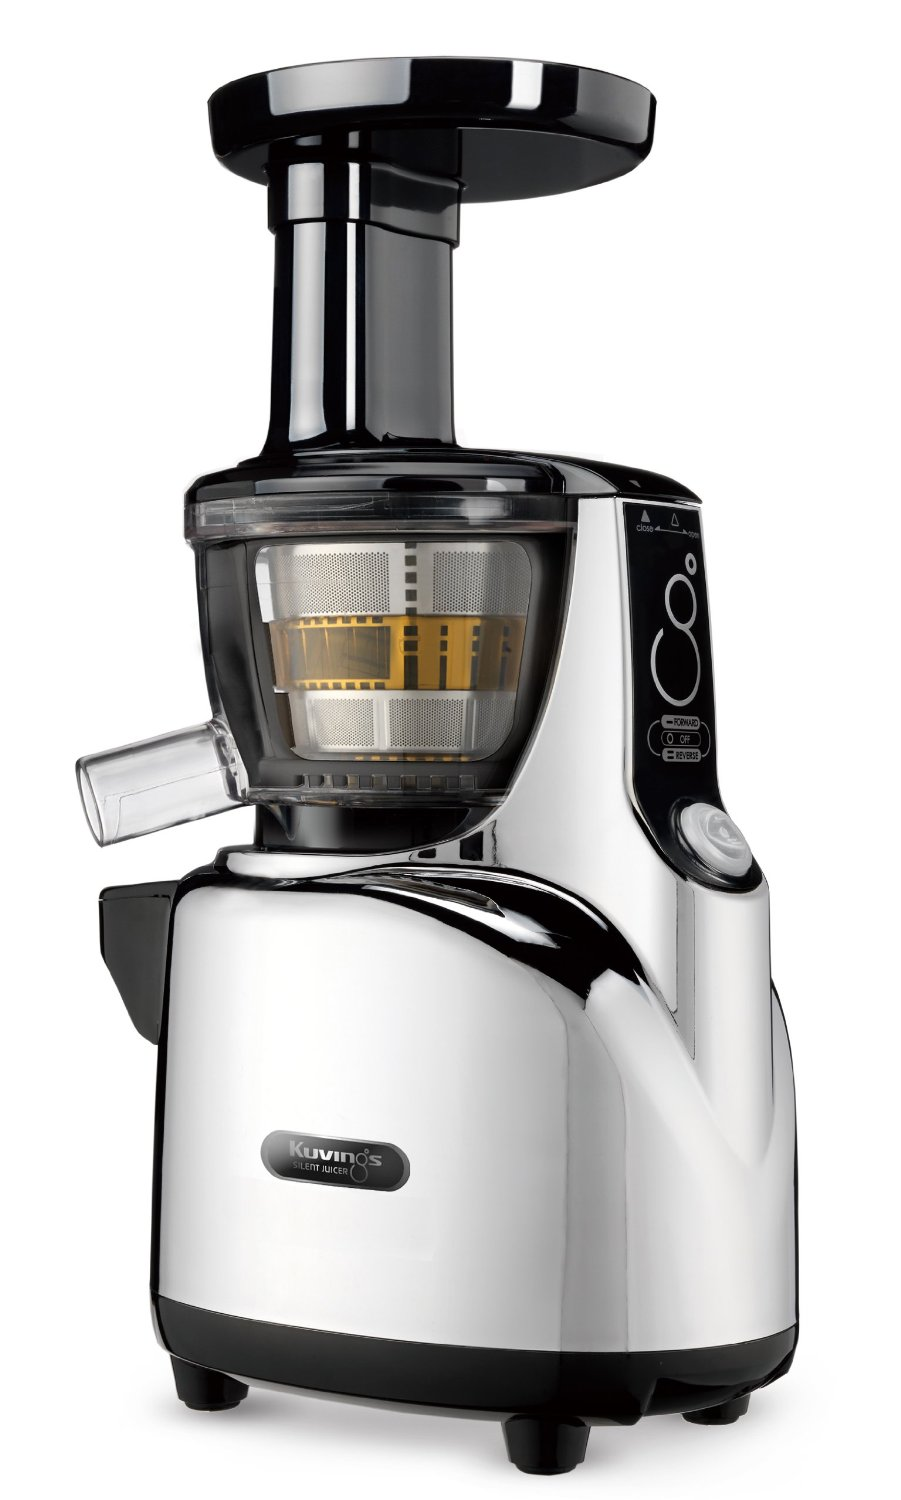 Best Vertical Masticating Juicer 2015 : 5 Best Kuvings Juicer Reviews UPDATED: 2018 The Home Savant